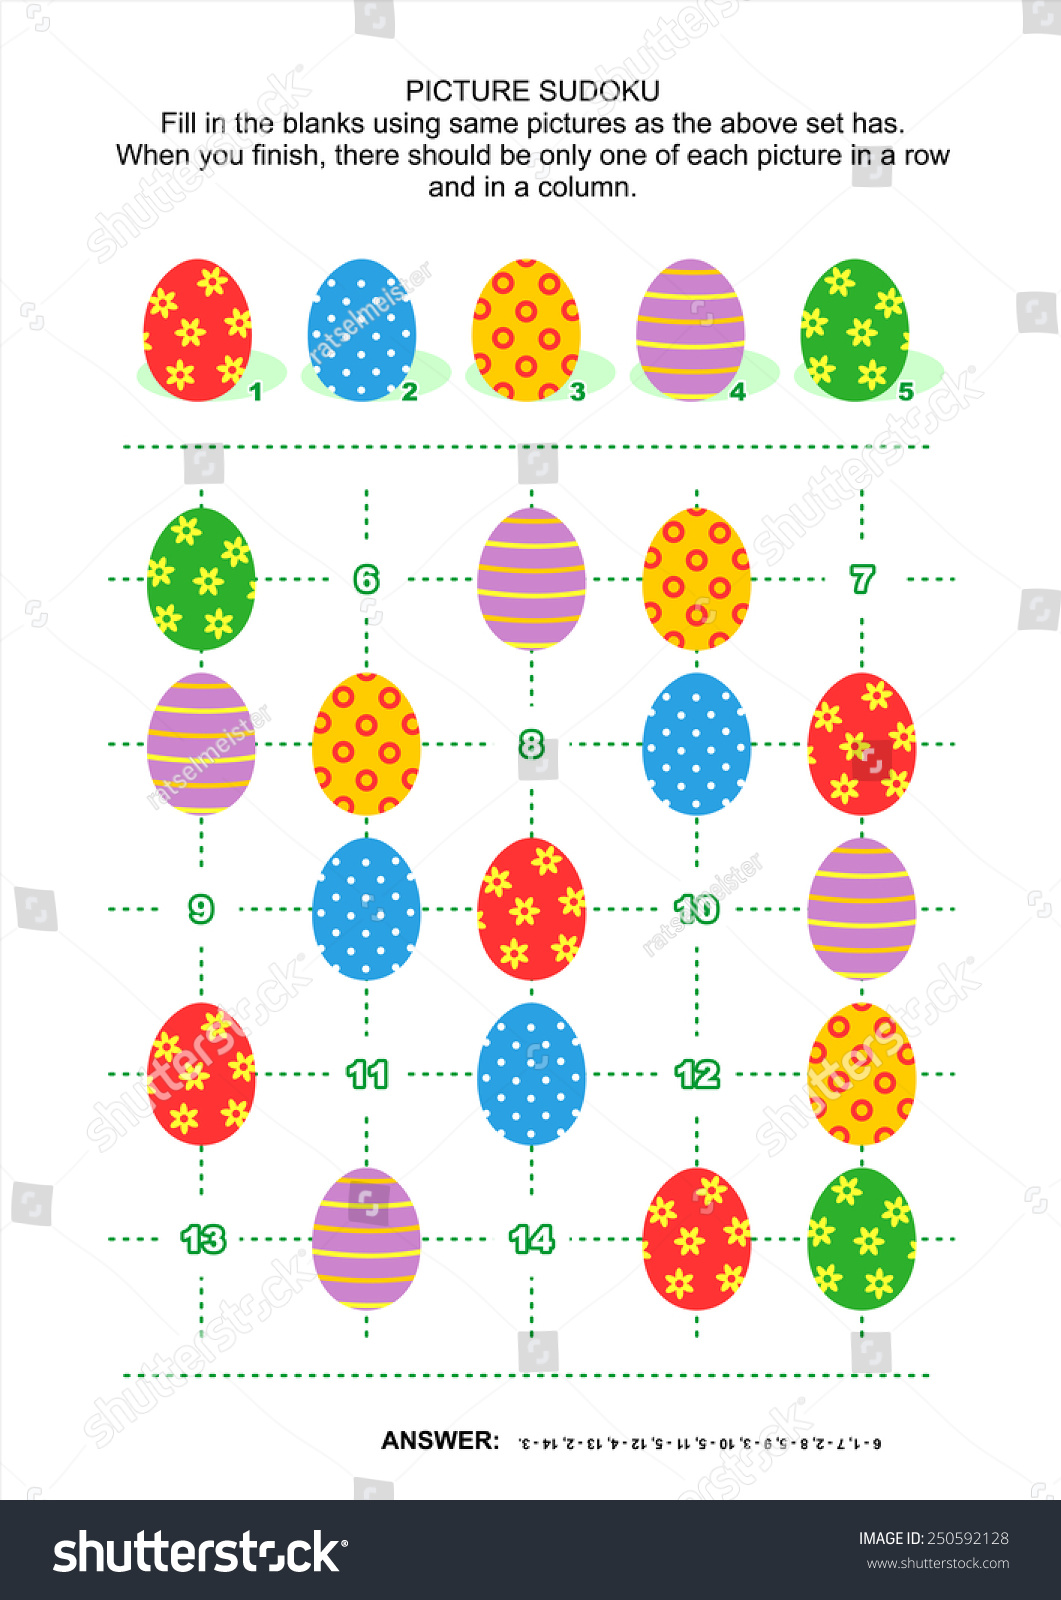 Easter Themed Picture Sudoku Puzzle 5 X 5 Stock Illustration ...